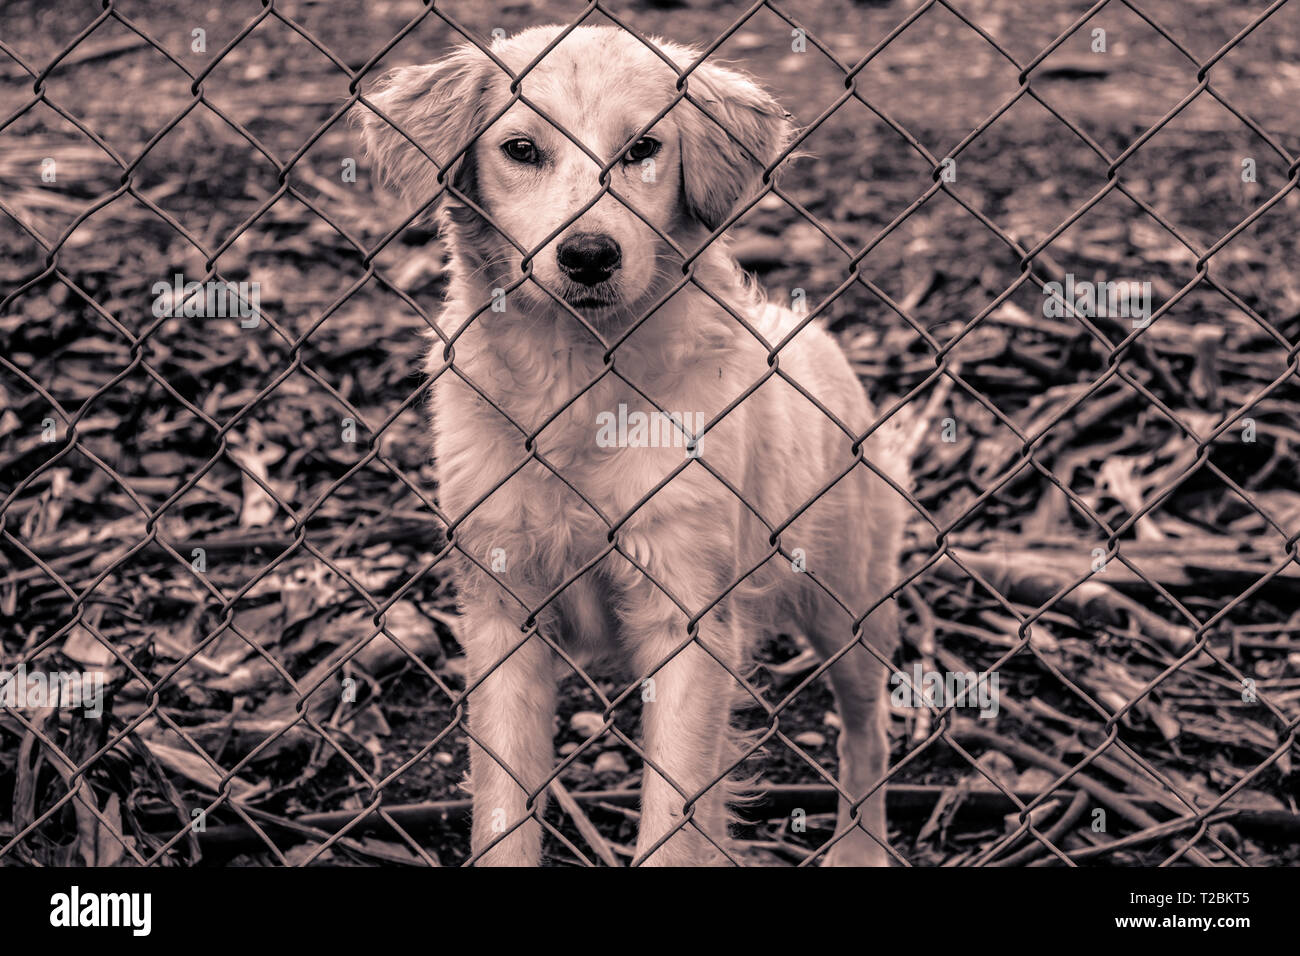 Photograph of a small white dog that is behind a fence. - Stock Image